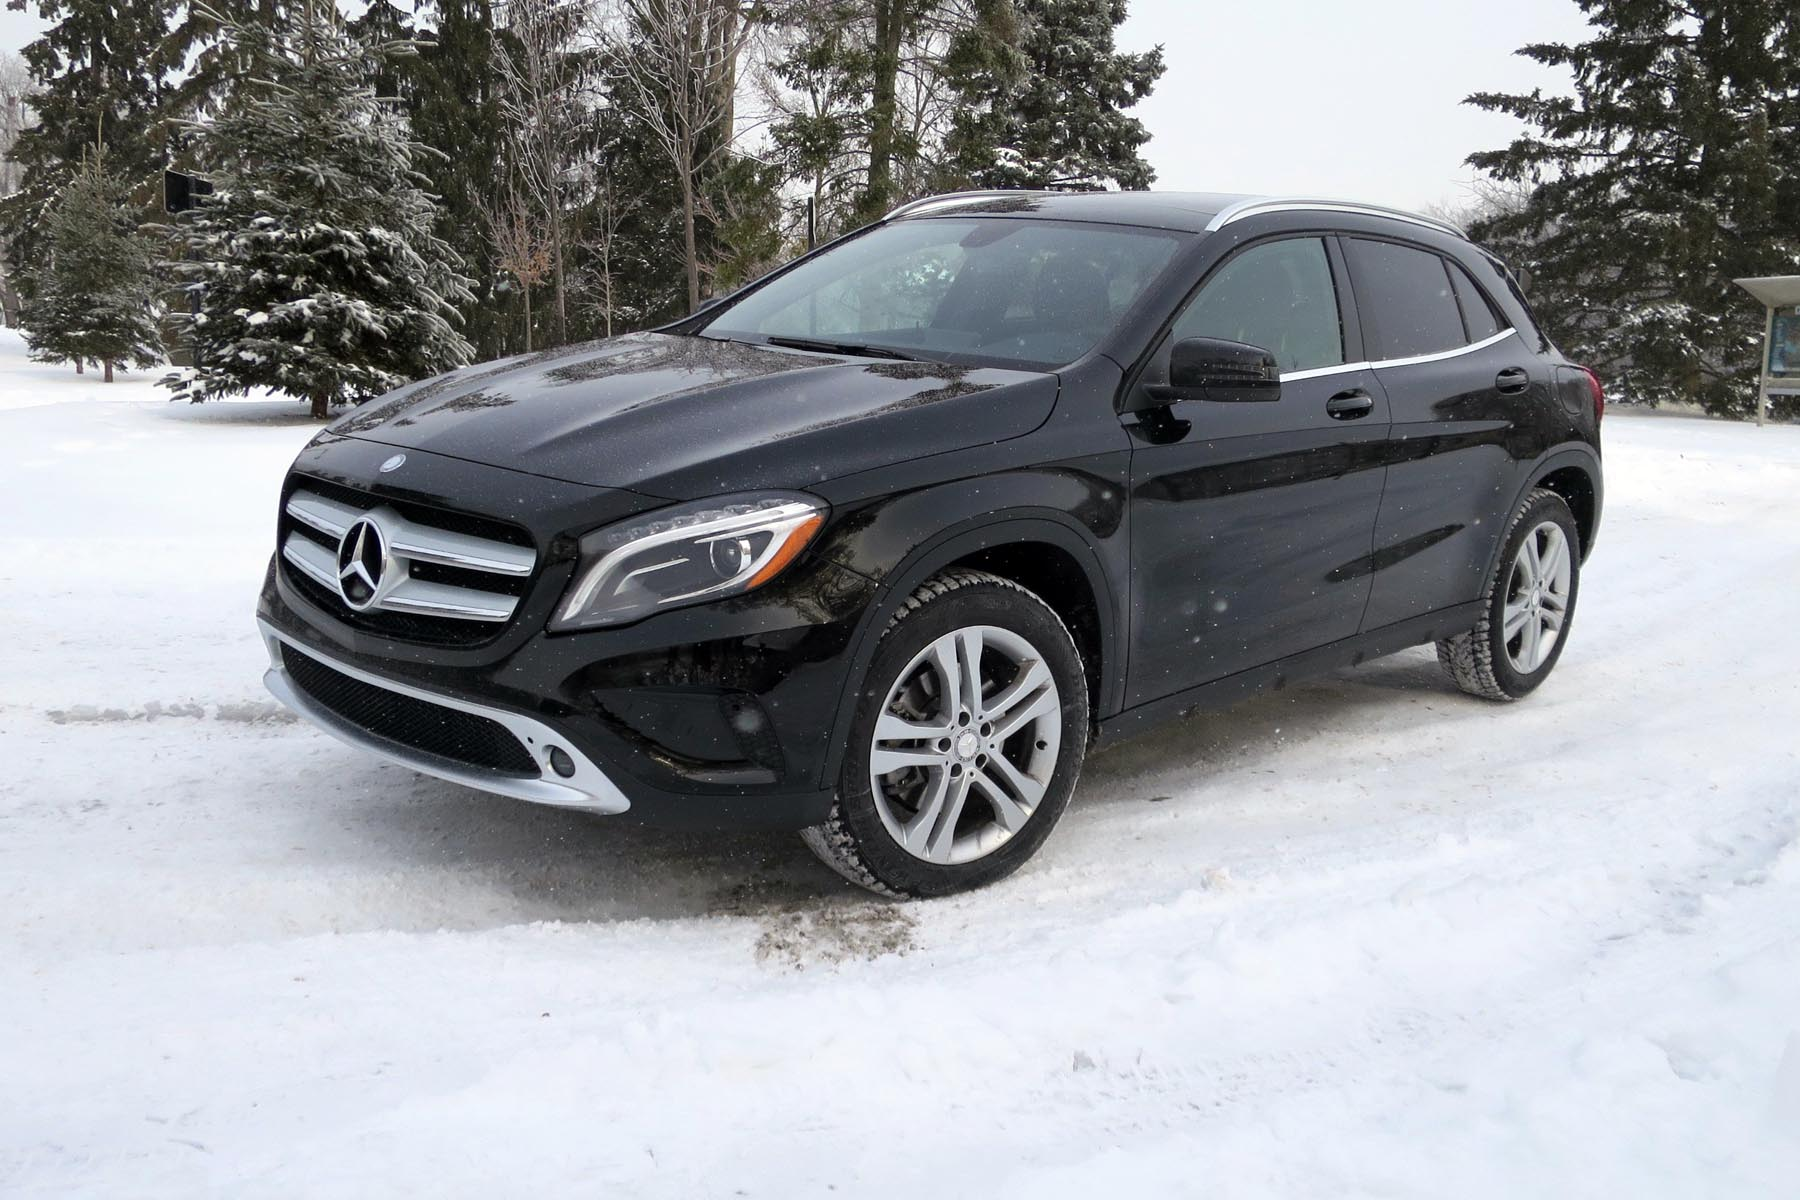 2015 mercedes benz gla 250 4matic for Mercedes benz gla 250 4matic